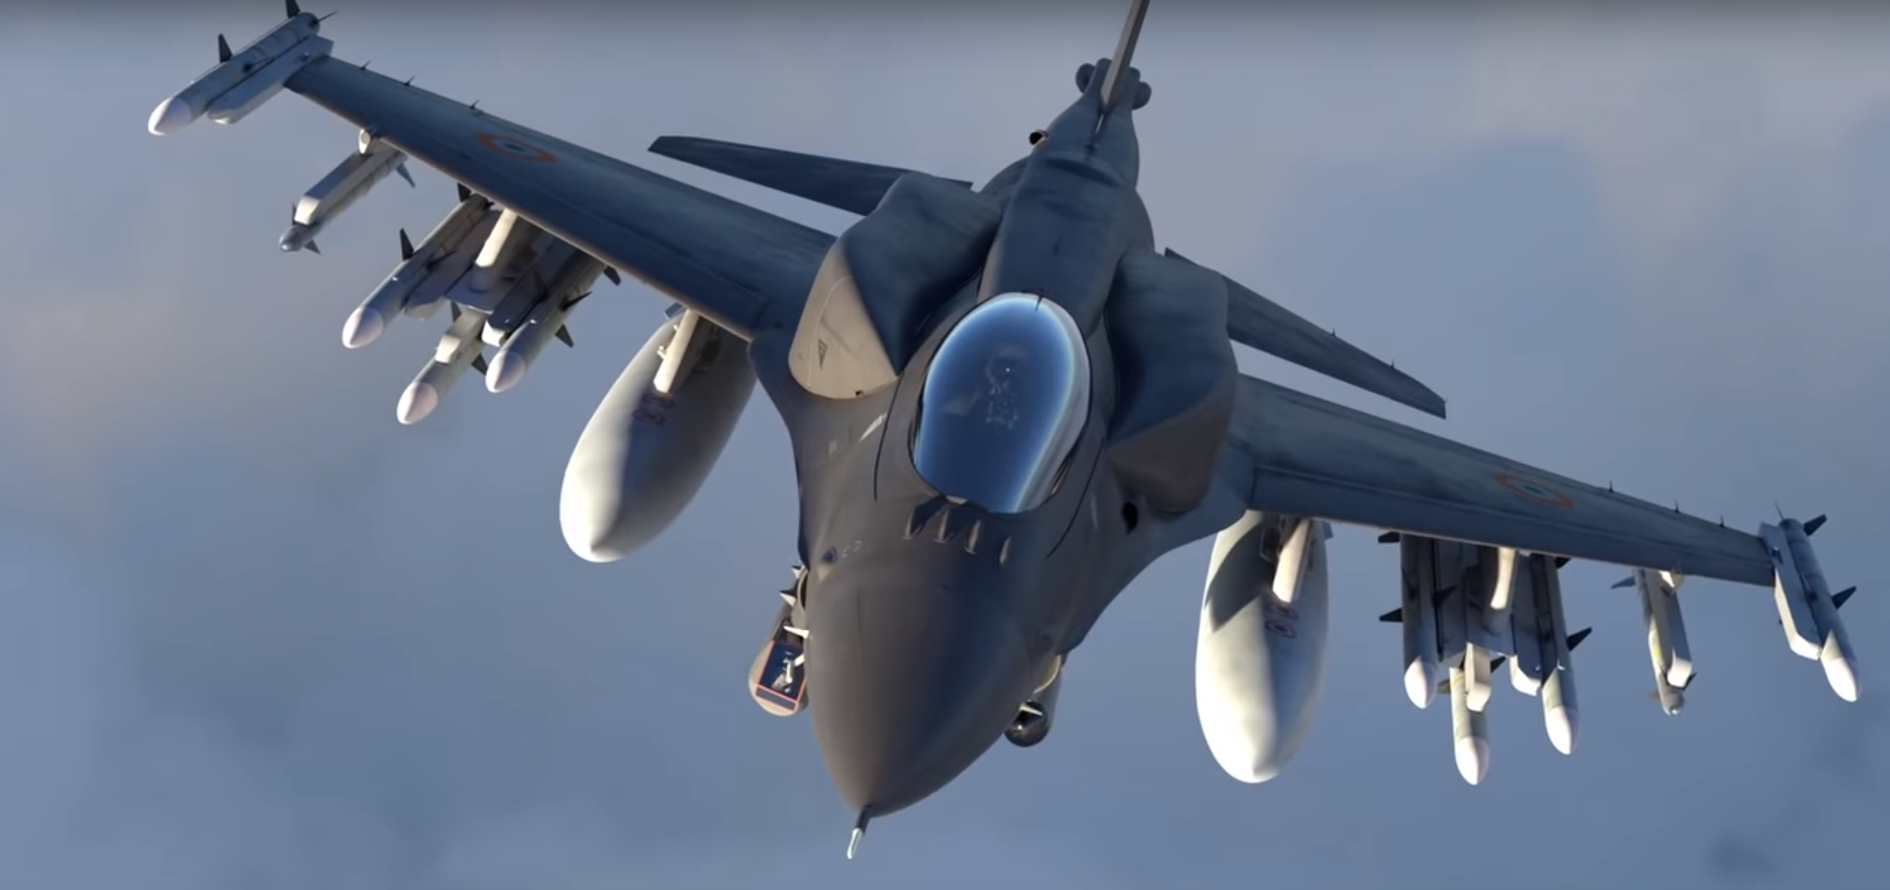 It Has F-22 and F-35 'DNA': Introducing Lockheed Martin's New F-21 Fighter